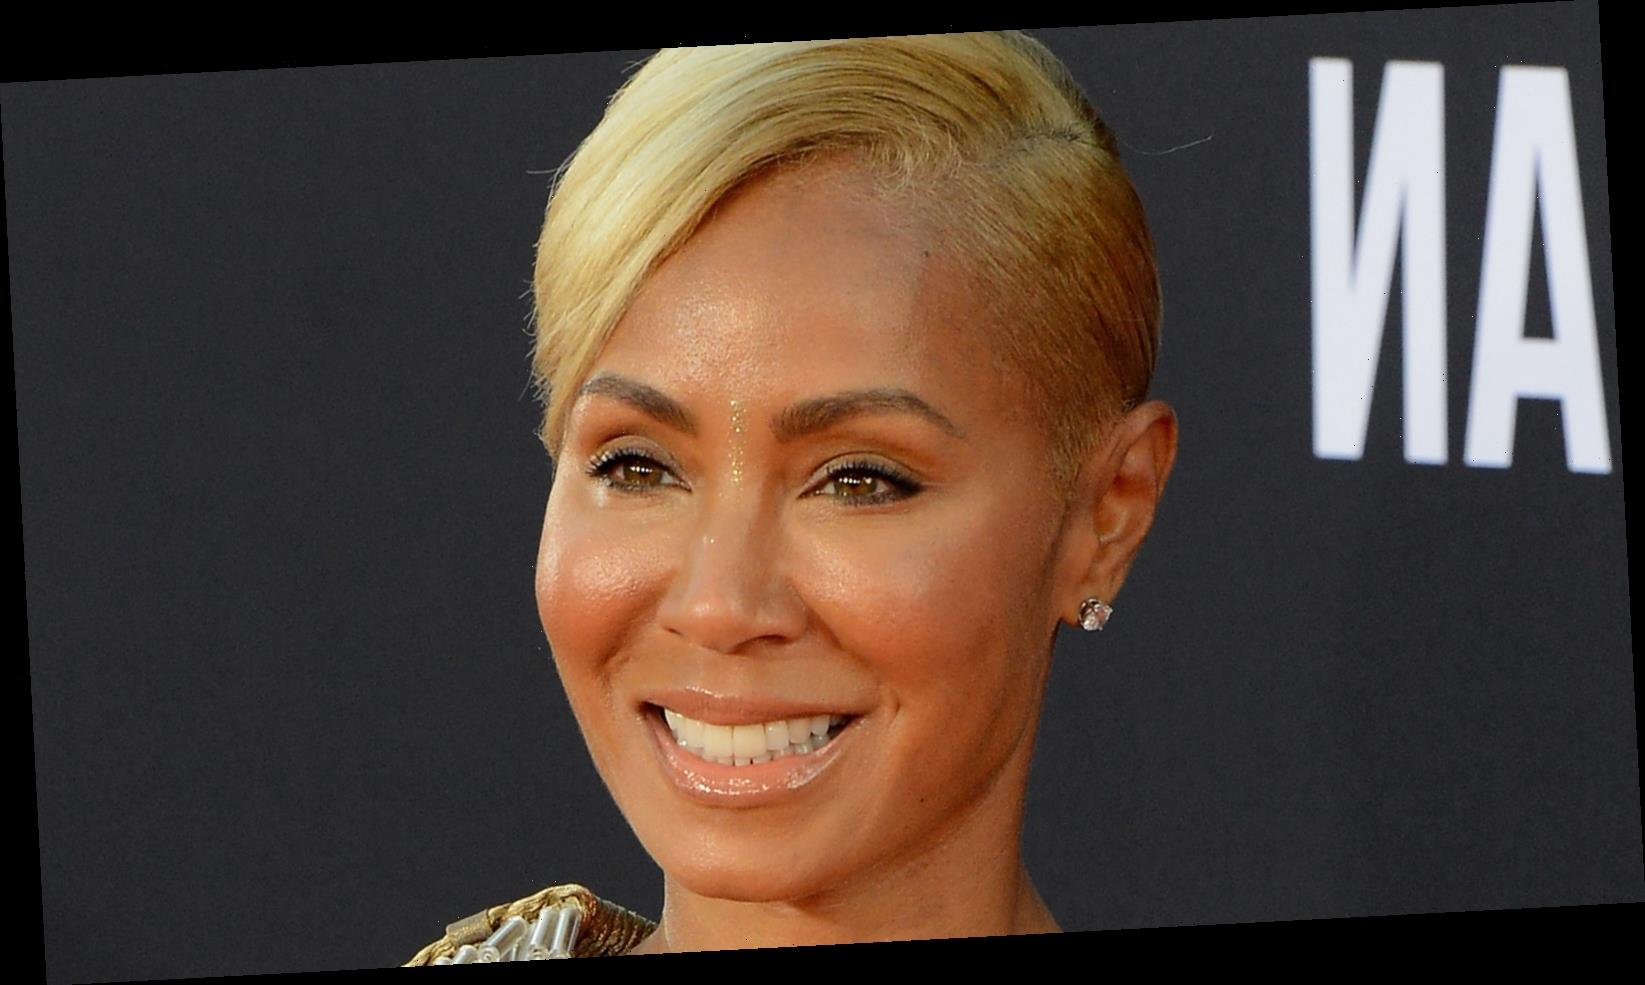 Jada Pinkett Smith's Red Table Talk Instagram Post With The Queen Has Everyone Hysterical